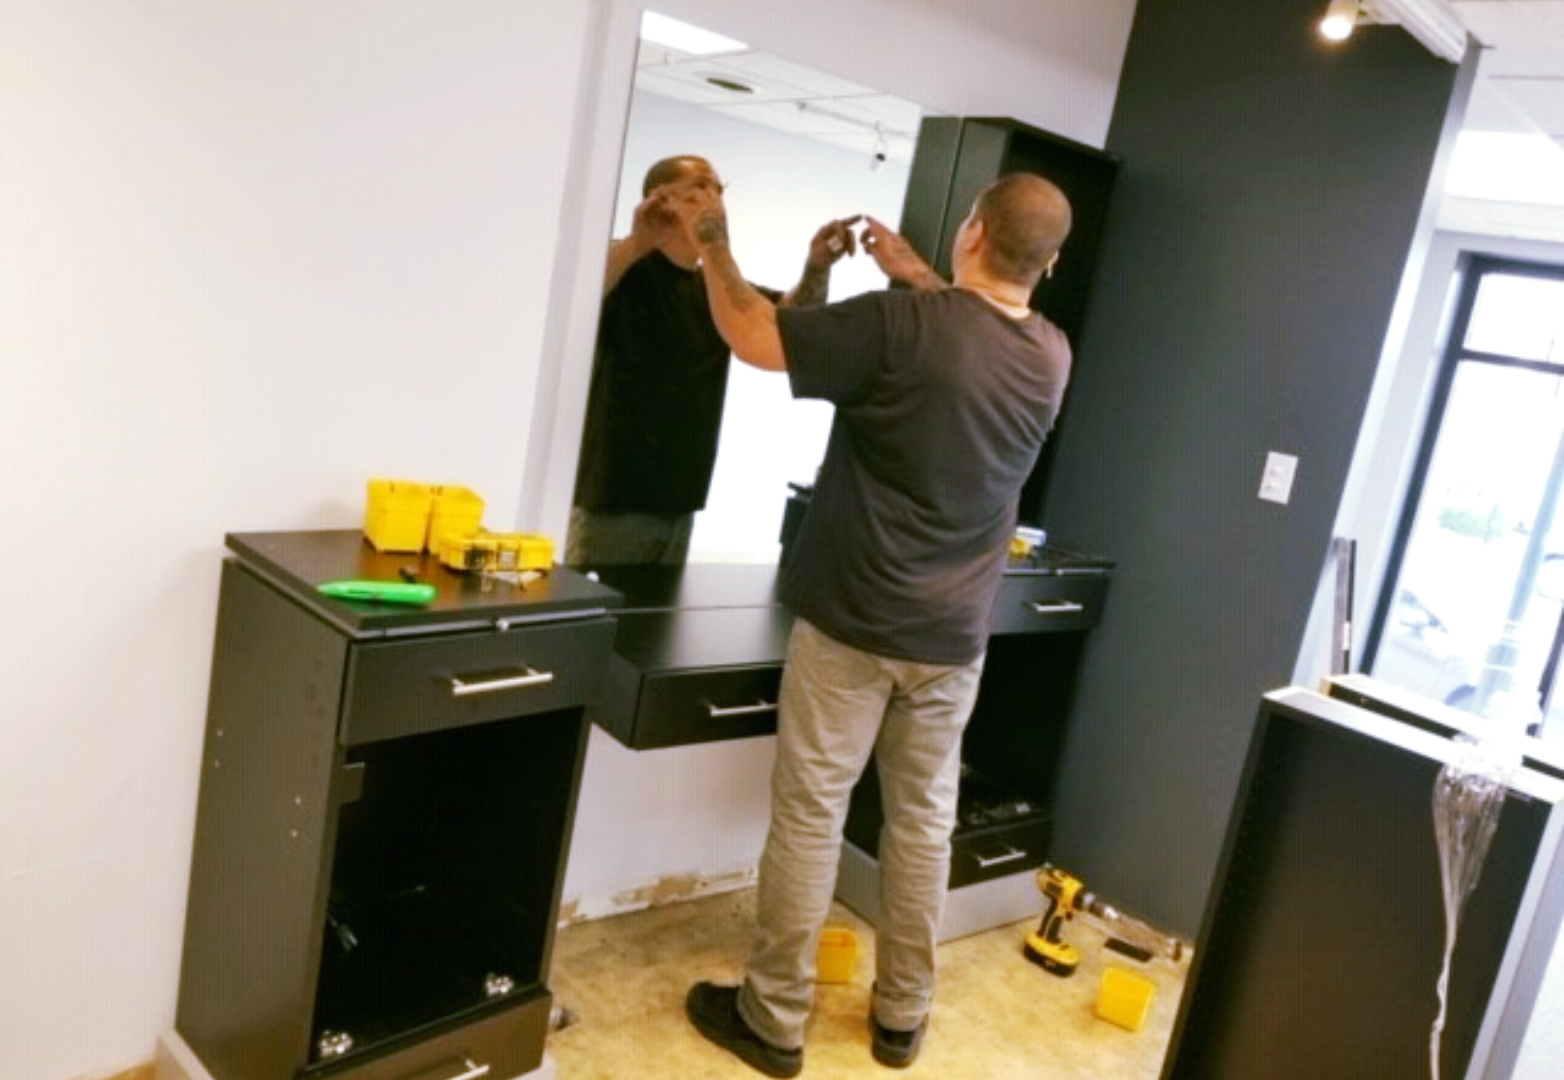 Man installing a mirror at a hair styling station in a salon under construction.